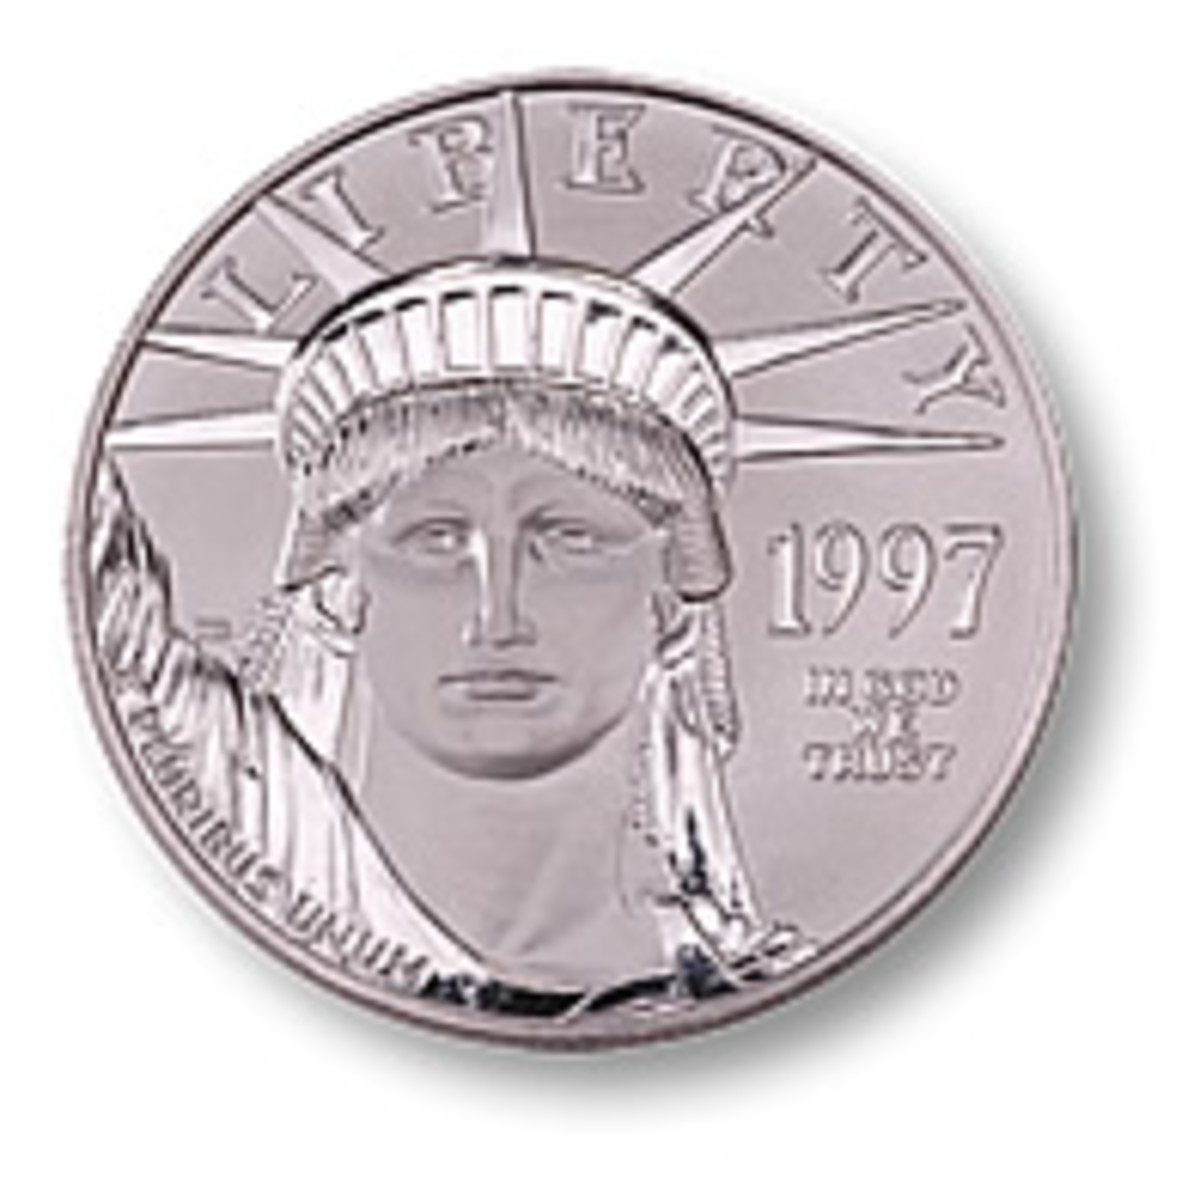 The platinum American Eagle coin.